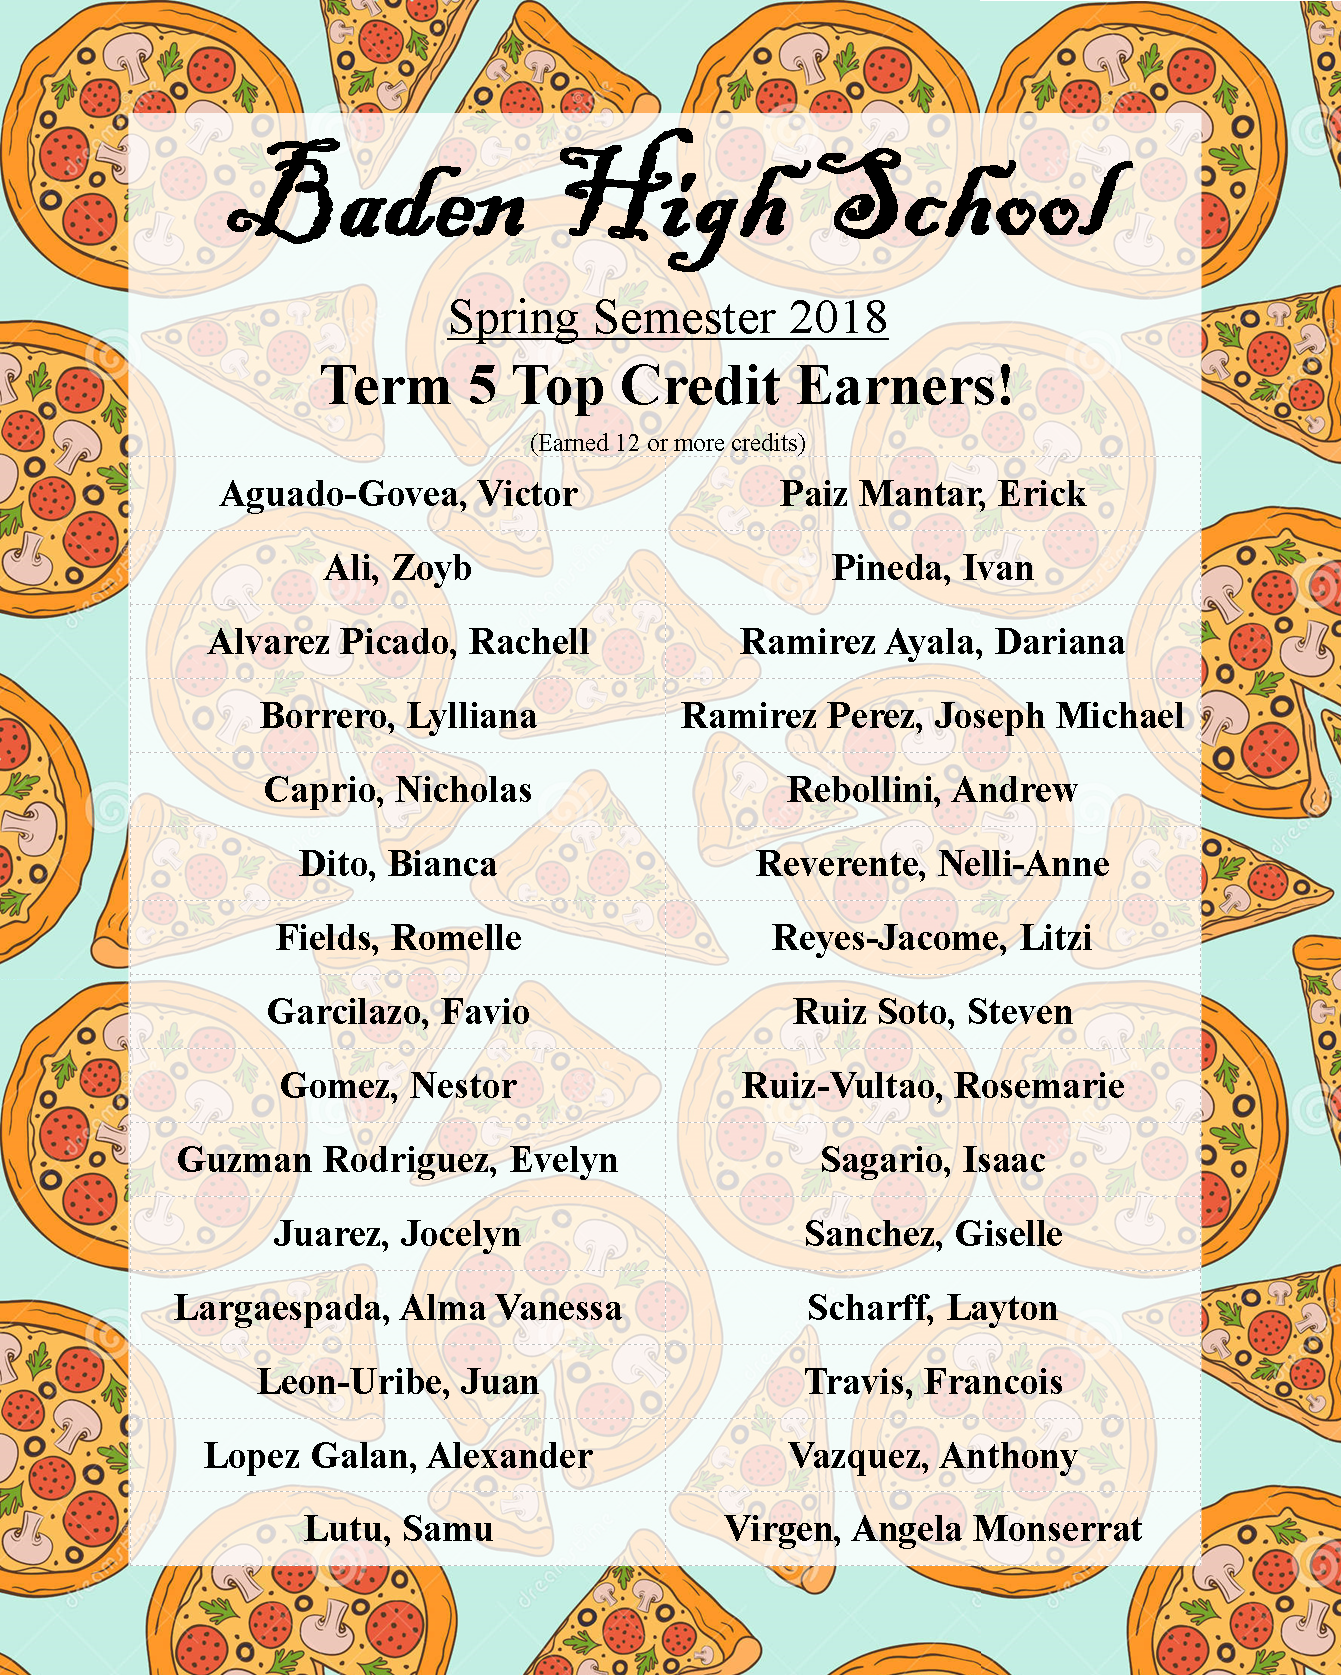 term 5 top credit earners